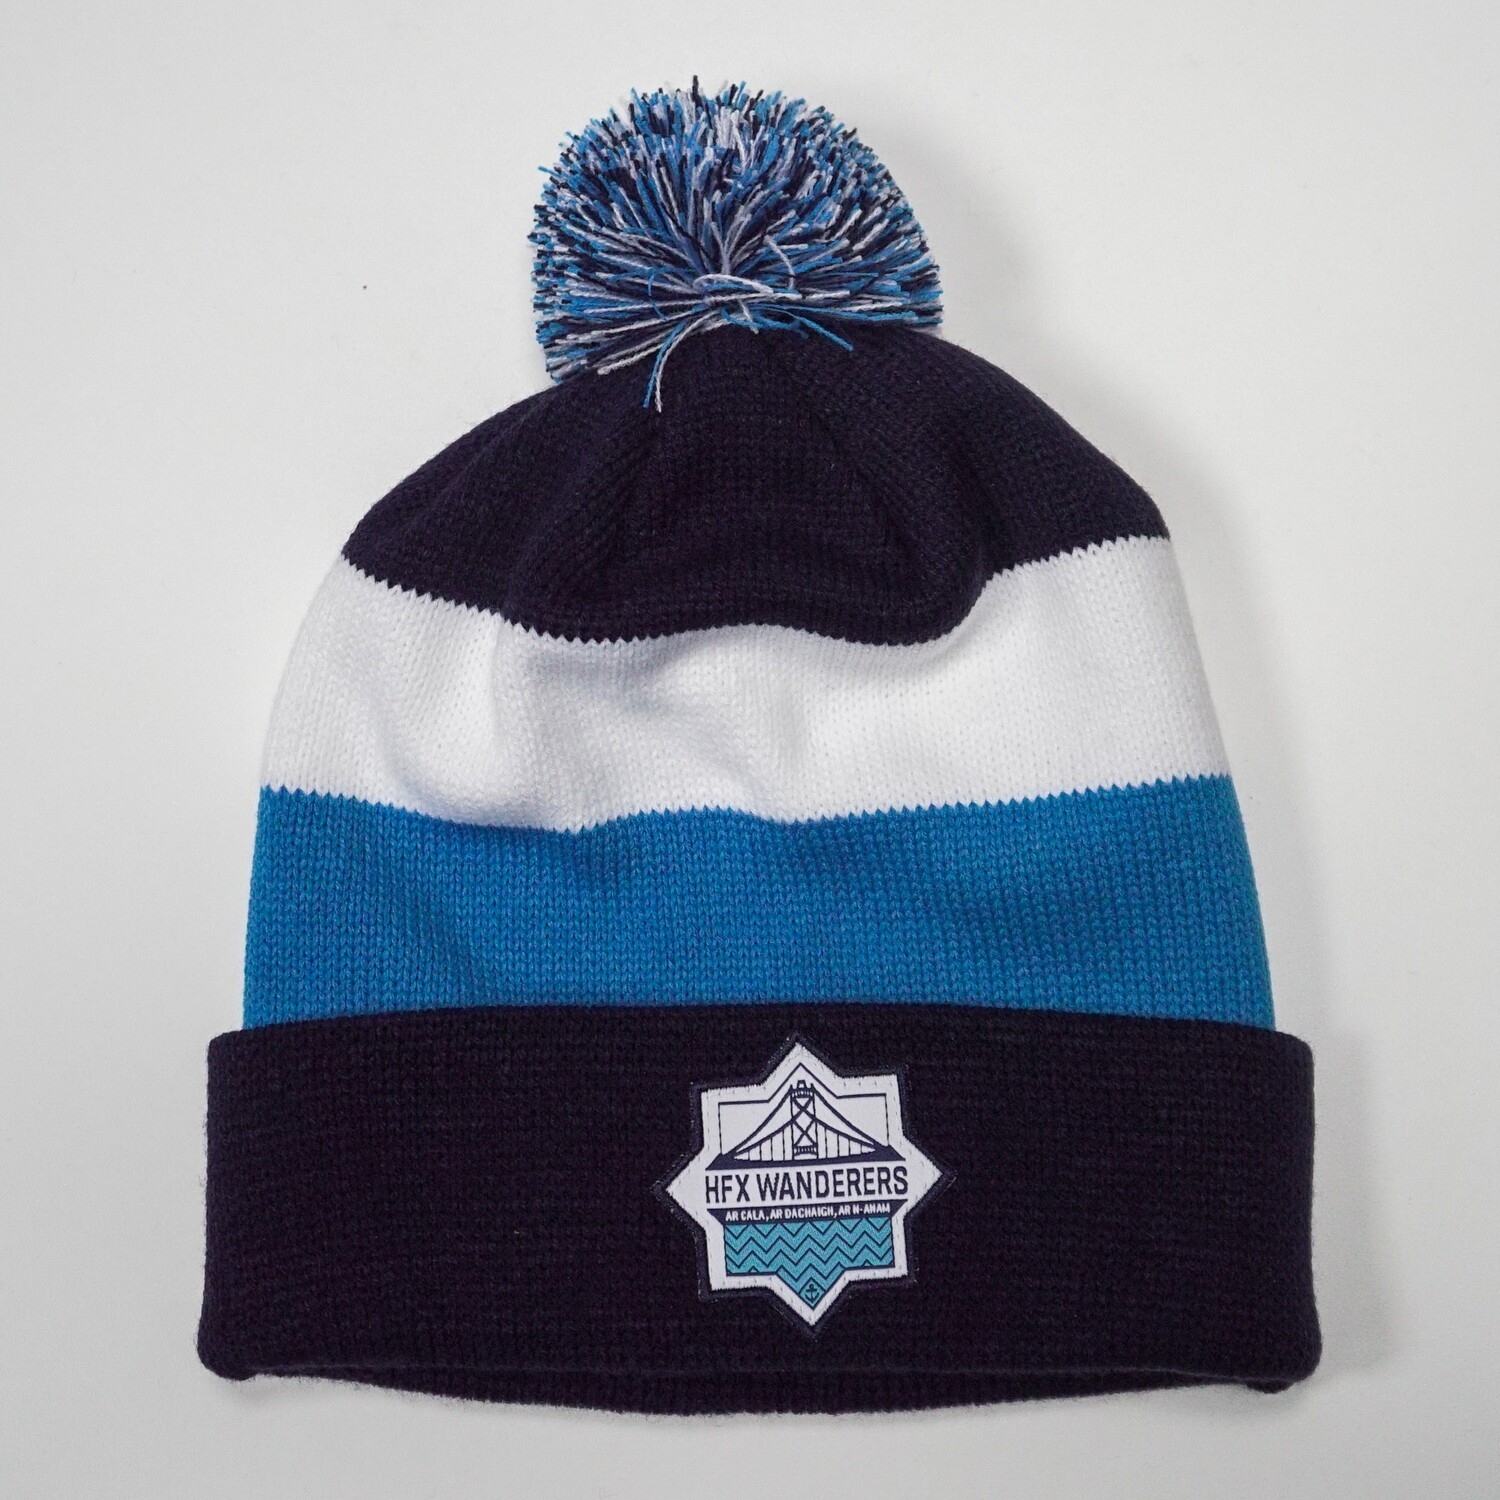 HFX Wanderers Striped Tuque